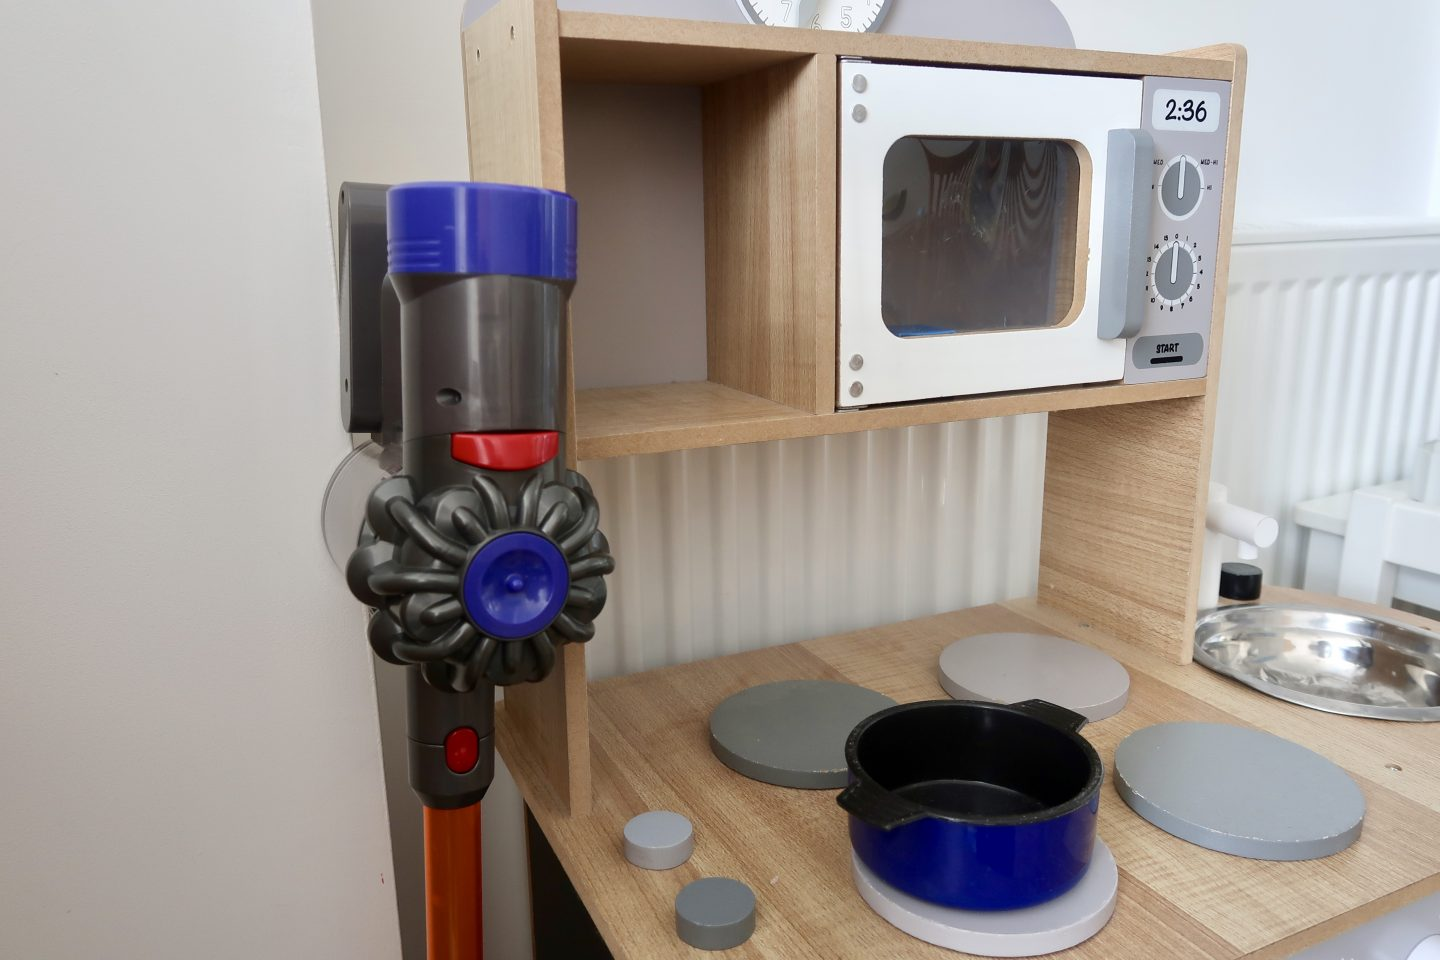 a kids toy Dyson cord-free vacuum cleaner next to a toy kitchen